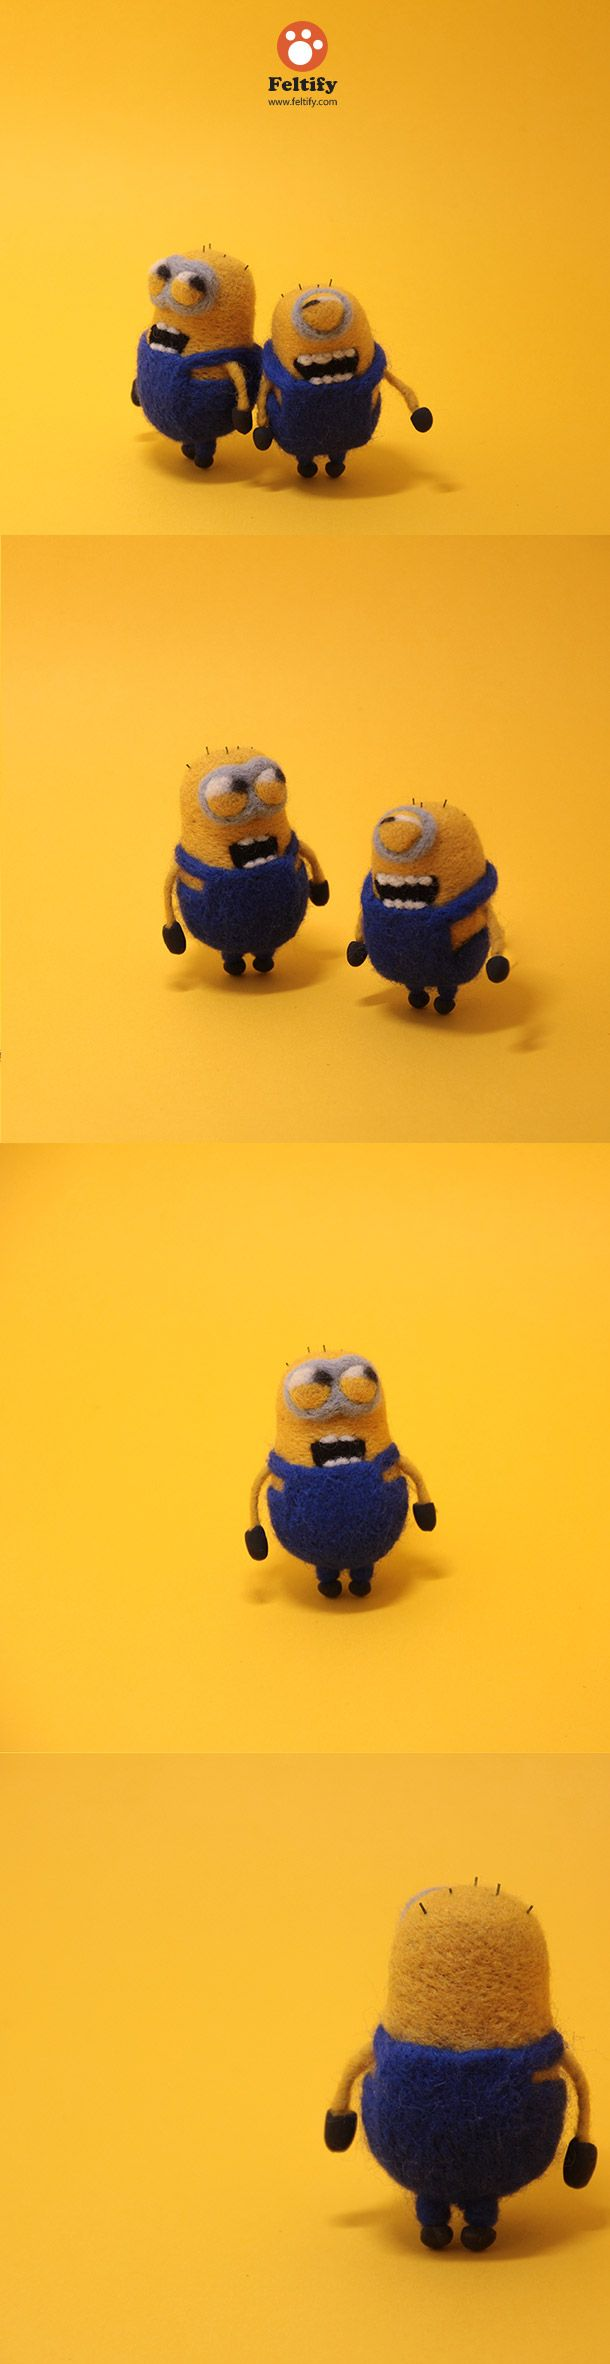 Needle felted felting felt minions doll toy craft cute craft project